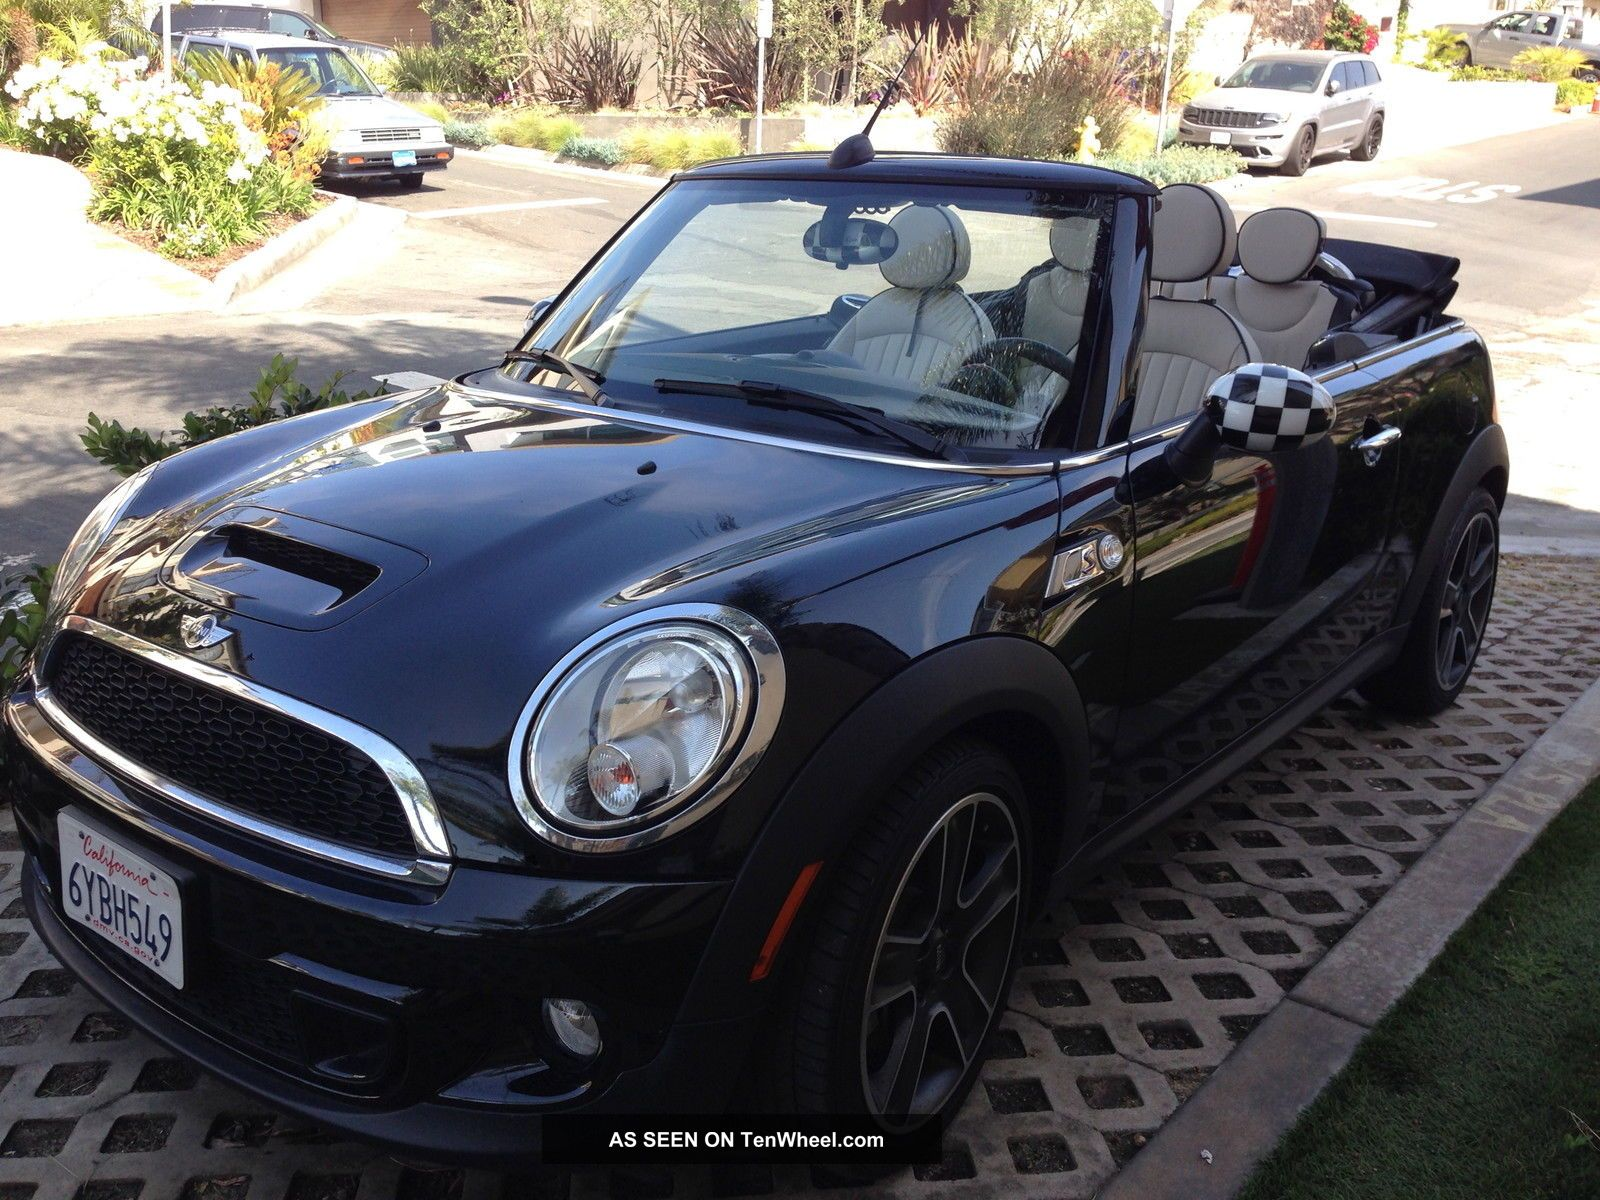 2013 Mini Cooper S Convertible - Top Of The Line Options Included Cooper S photo